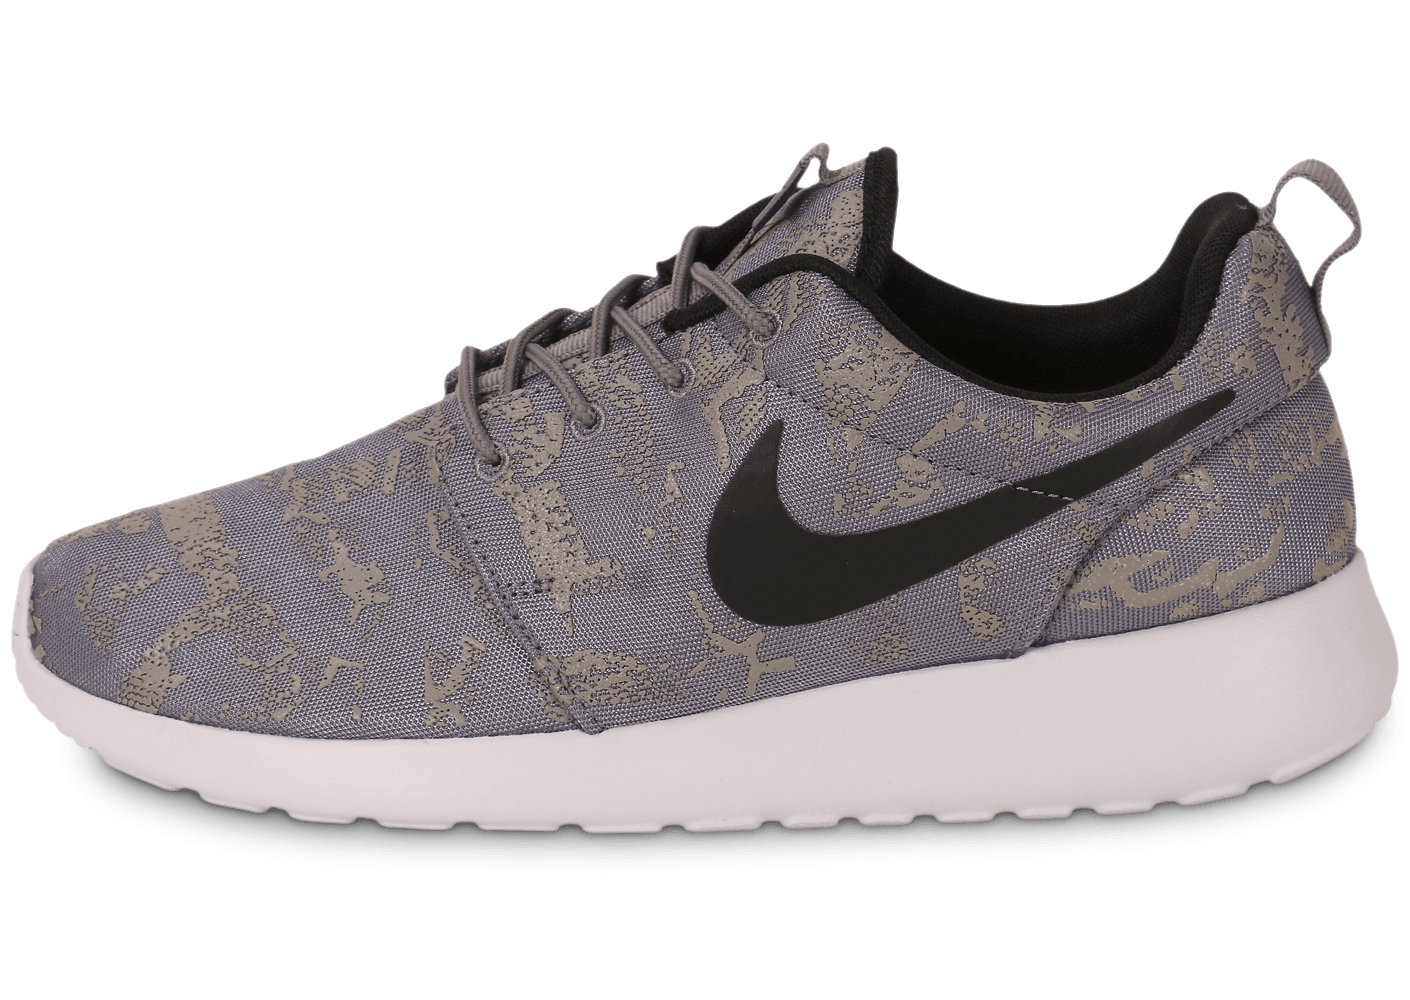 nike roshe one print grise chaussures chaussures chausport. Black Bedroom Furniture Sets. Home Design Ideas